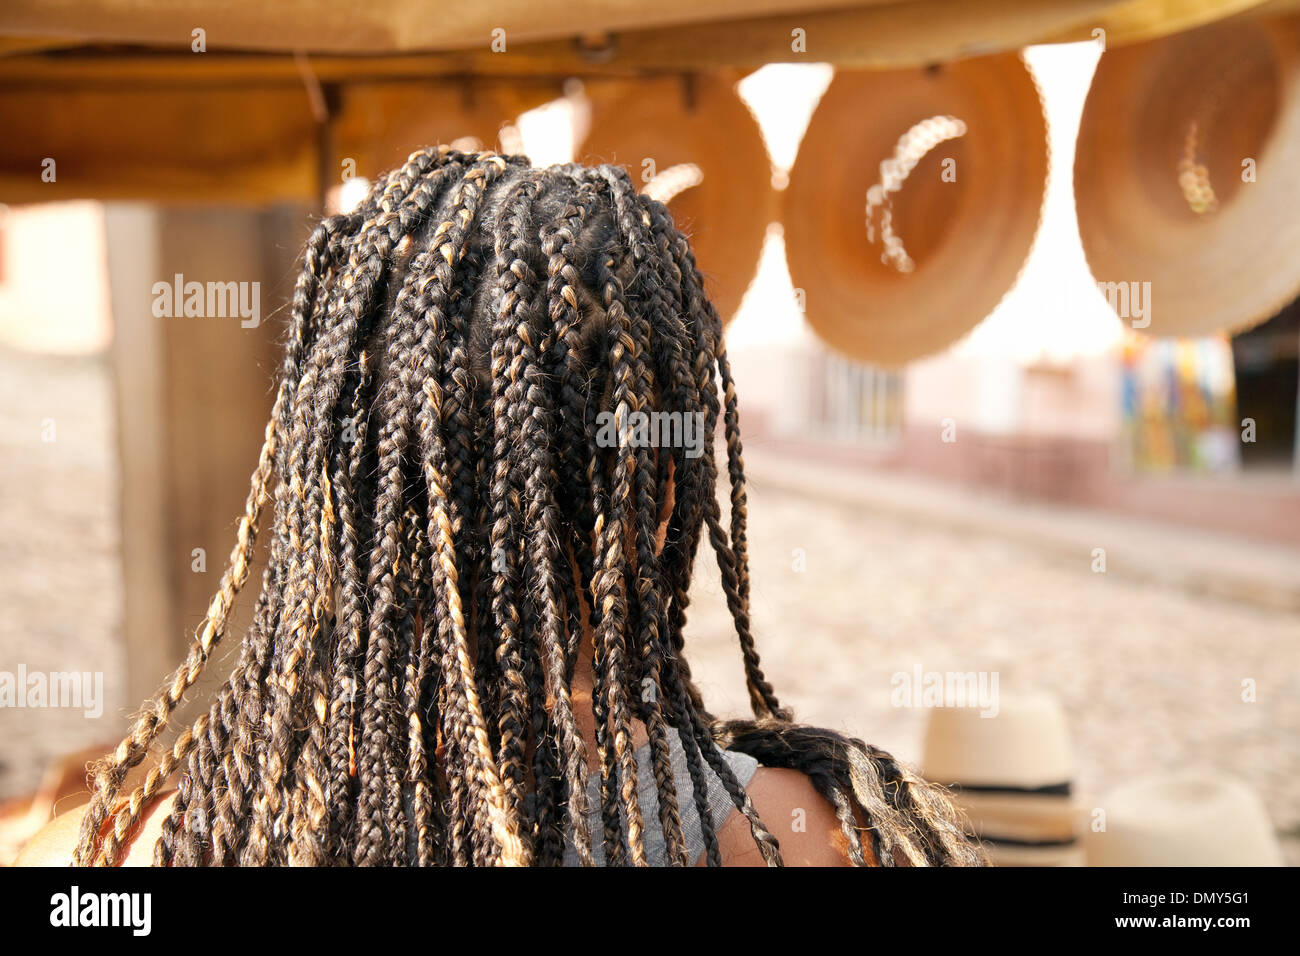 A young woman with braided hair braids, example of local culture, Cuba, Caribbean, Latin America - Stock Image